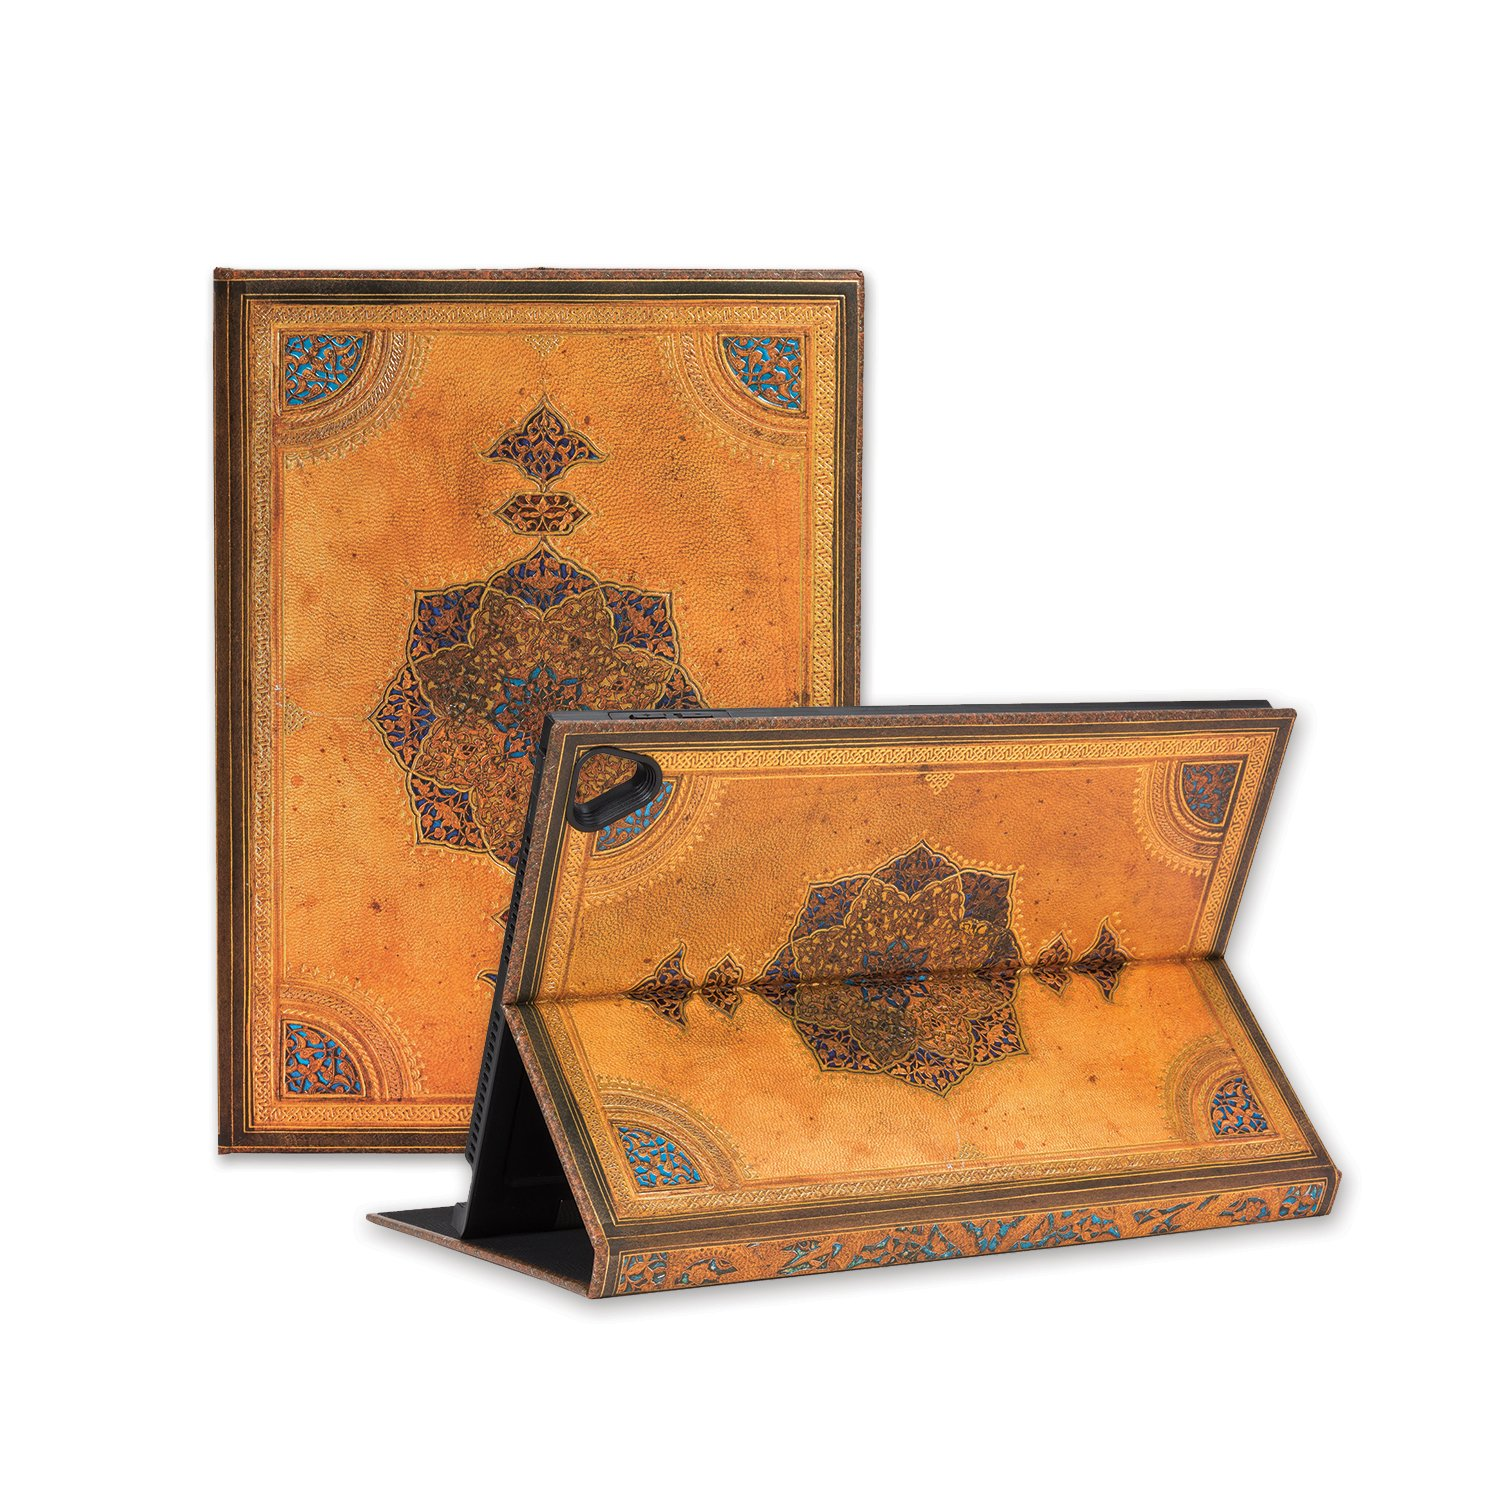 Paperblanks eXchange case for Apple iPad Pro 9.7 / Air 2, Infinite Viewing Angle Case – Safavid Design